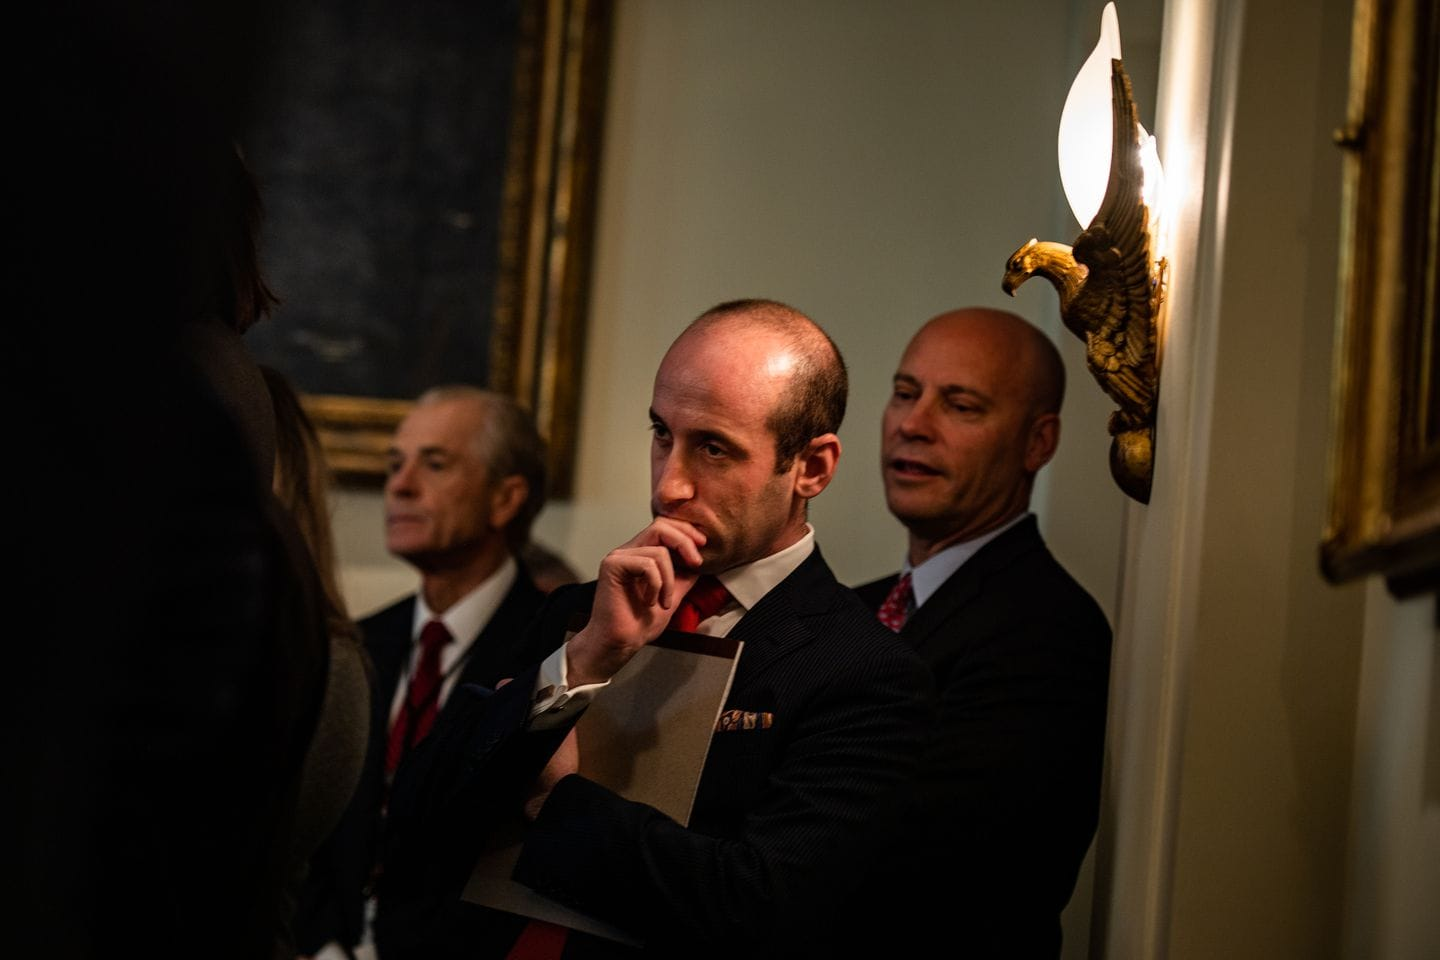 Miller listens as President Trump speaks during a Cabinet meeting at the White House on Nov. 19, 2019. (Salwan Georges/The Washington Post)